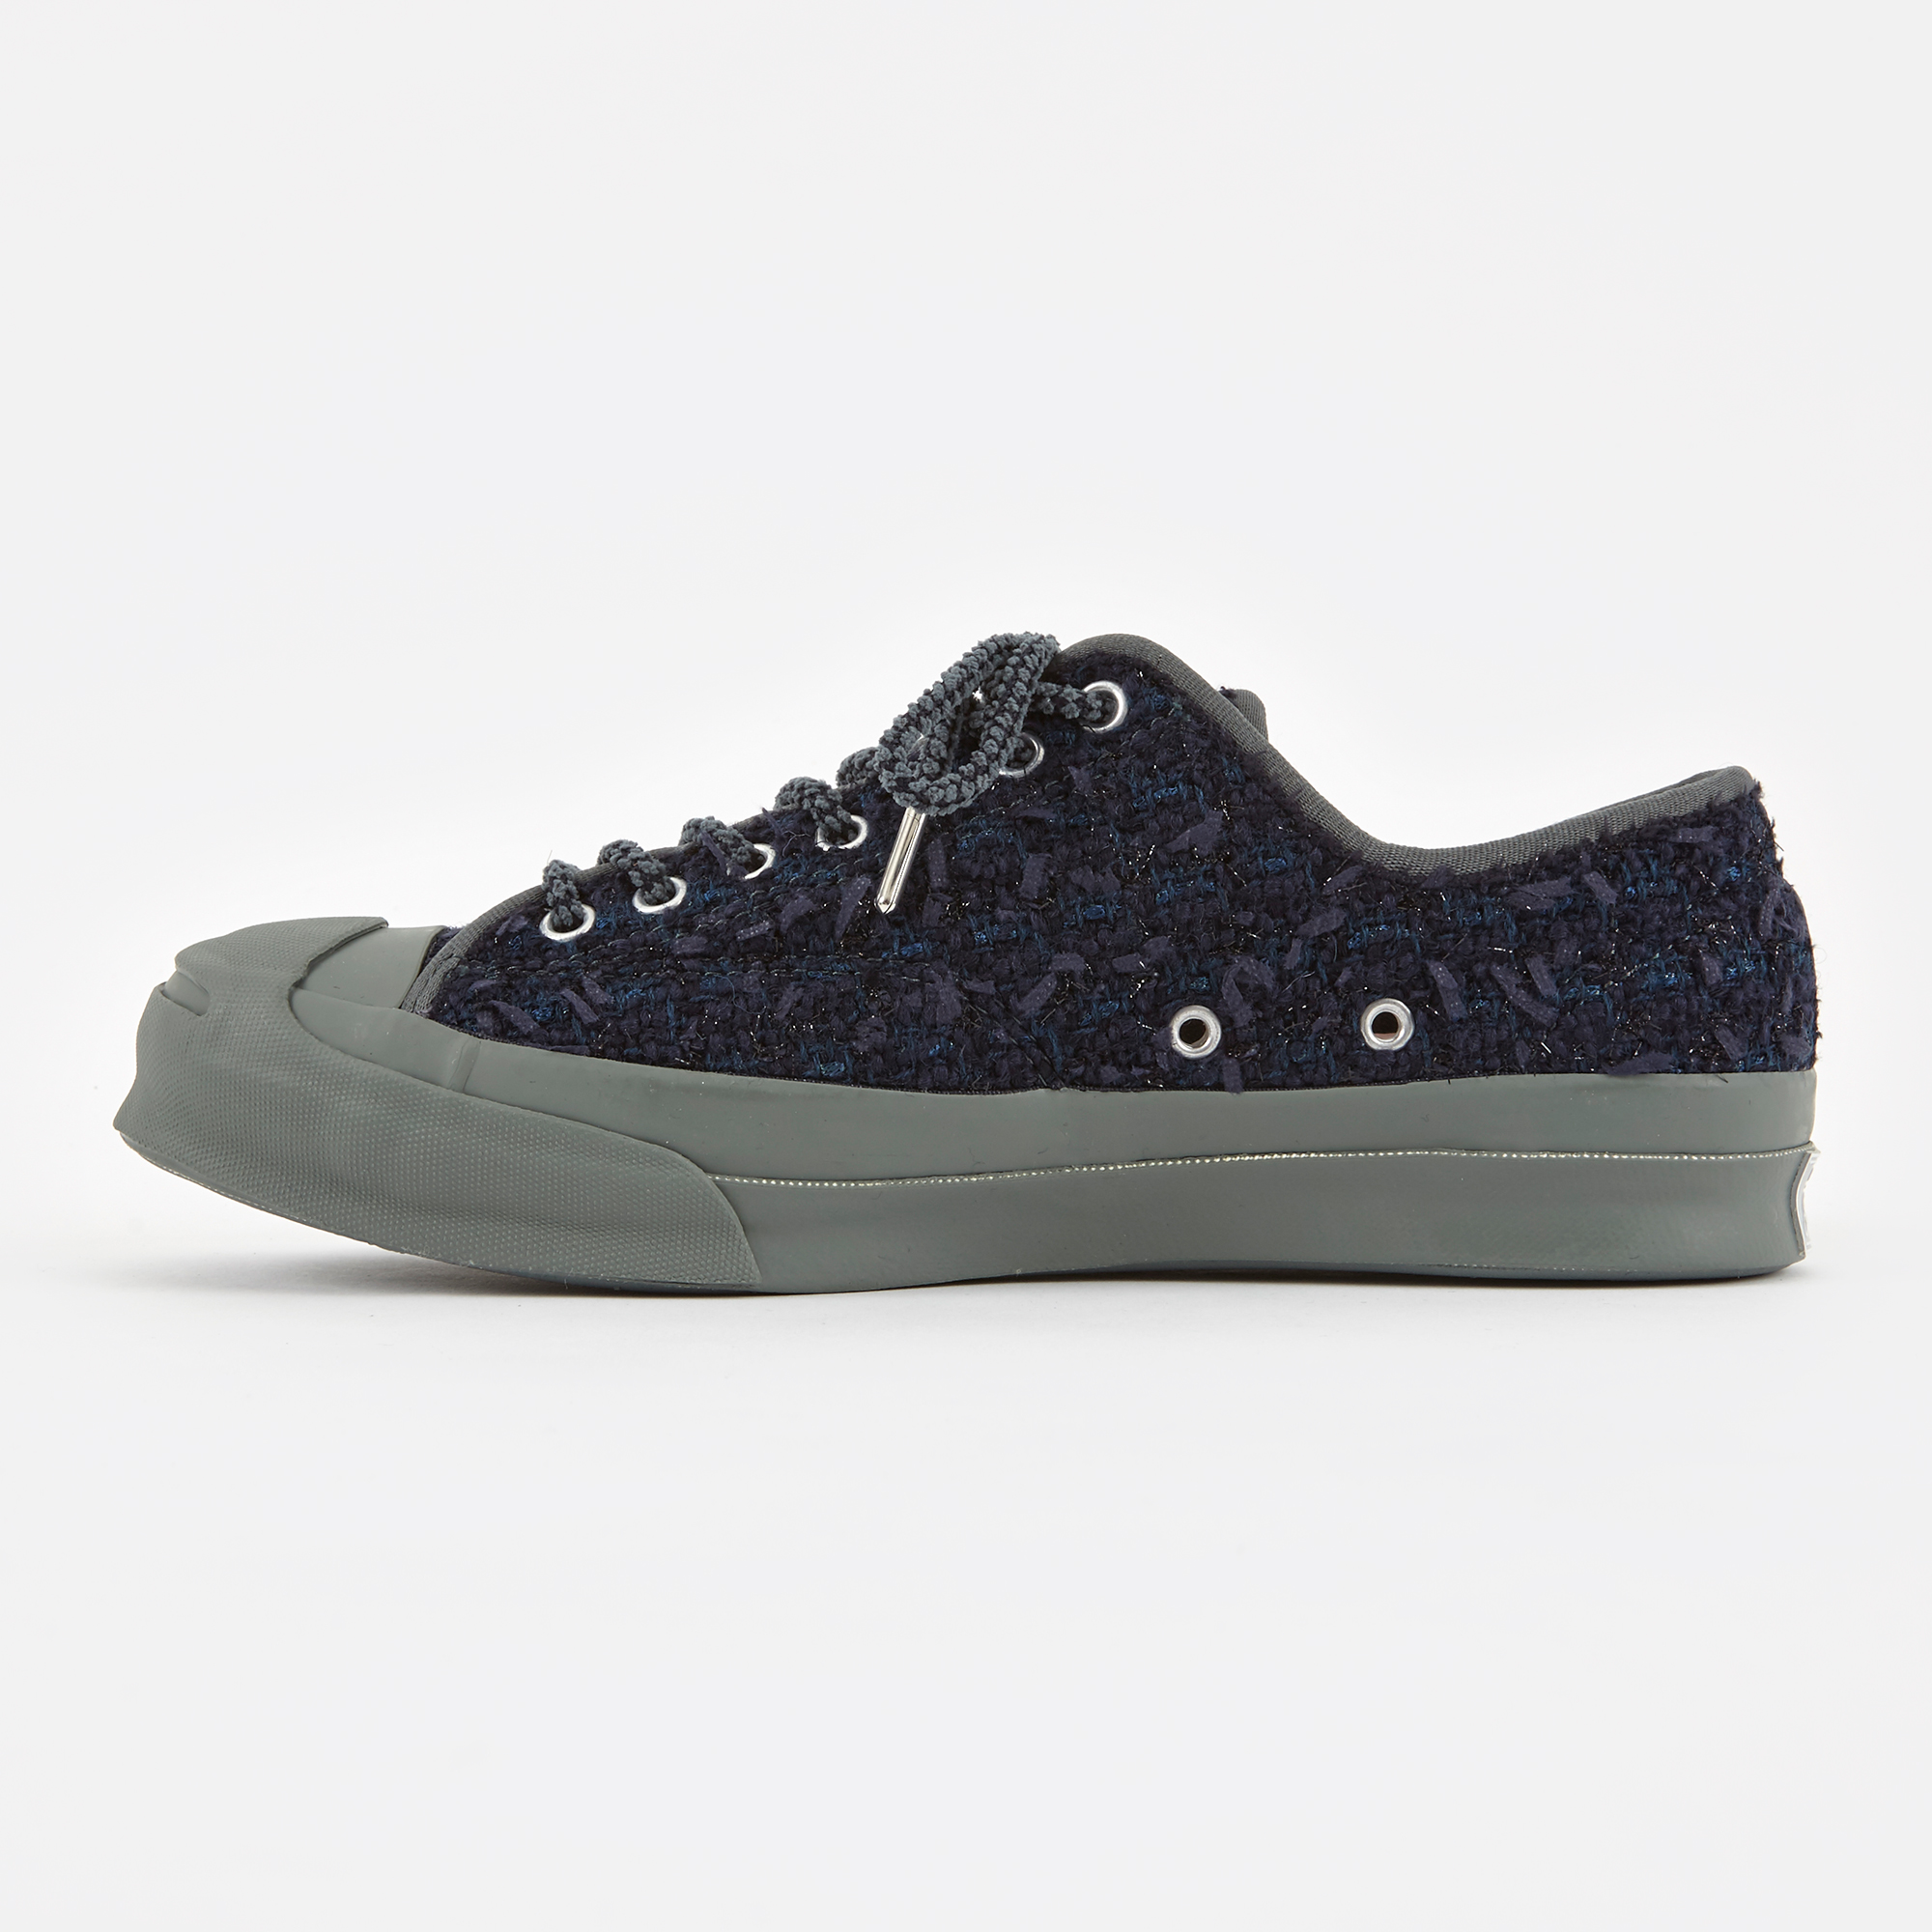 96ac3522a494 Converse x Bunney Jack Purcell Signature Ox - Navy